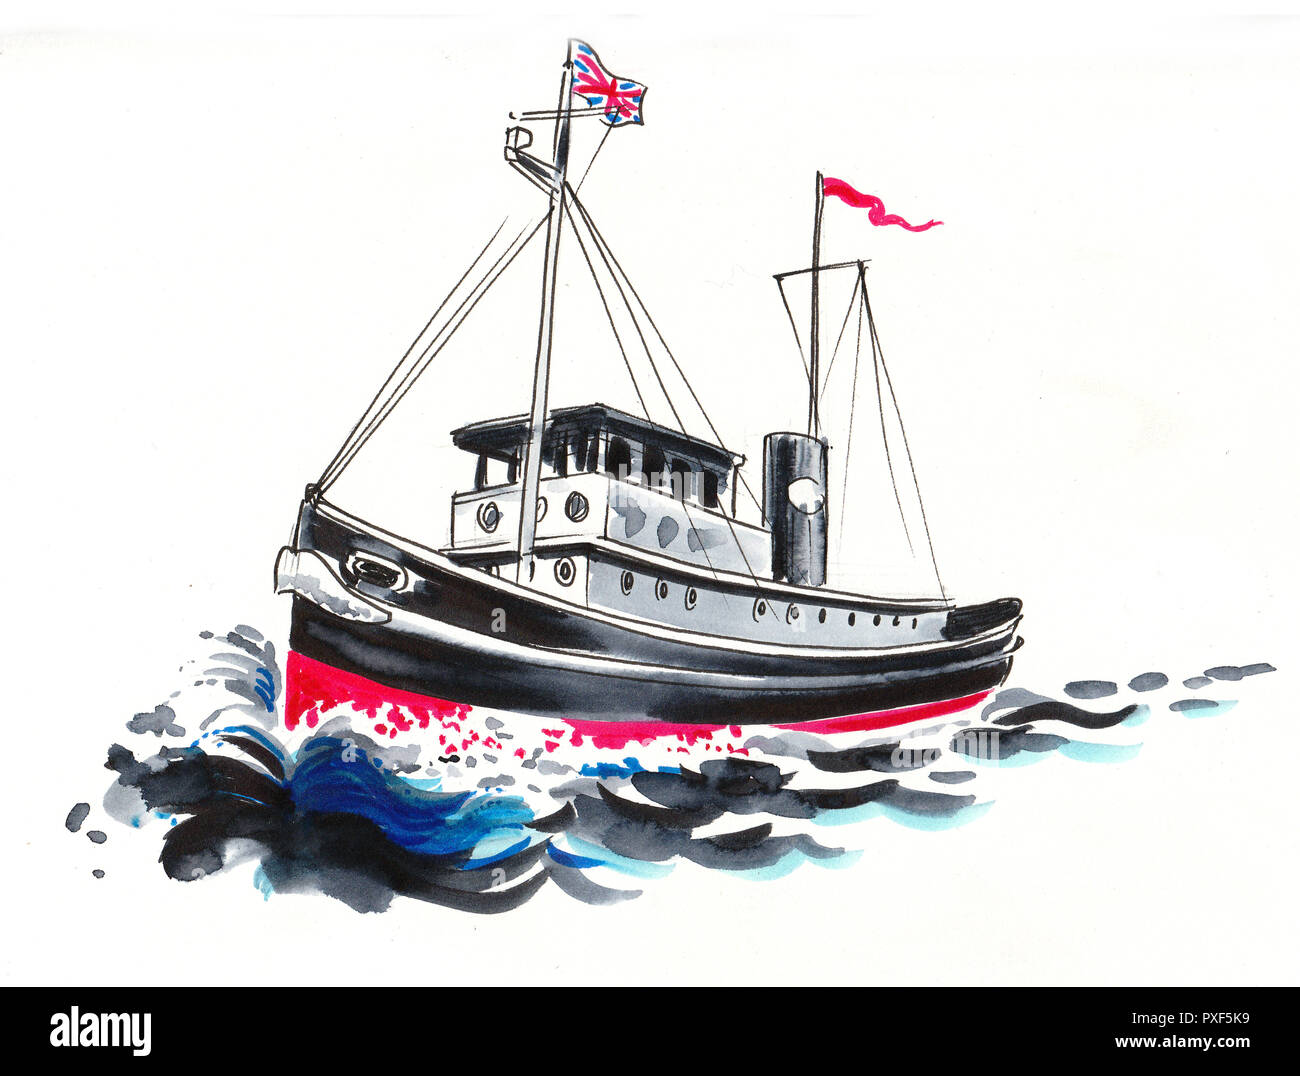 Tug Boat Cut Out Stock Images Pictures Alamy Tugboat Wiring Diagram In The Sea Ink And Watercolor Drawing Image